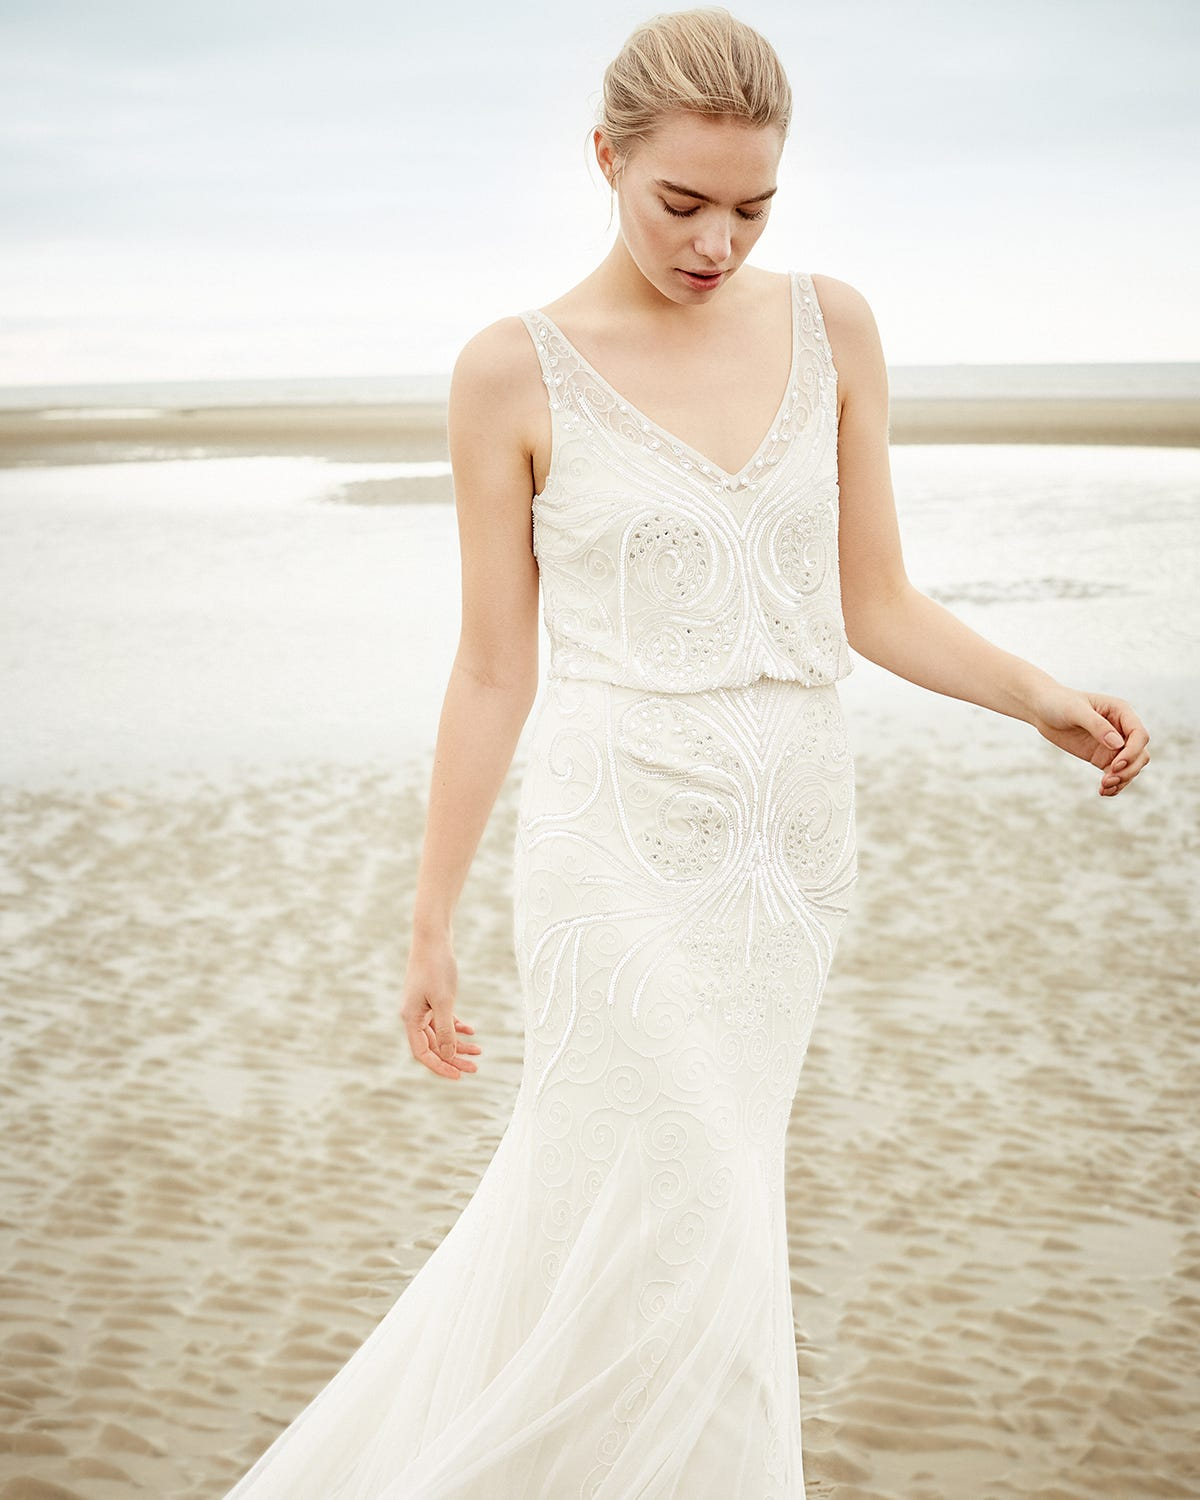 1a6c182bd205 Where To Find The Best Secondhand Wedding Dresses